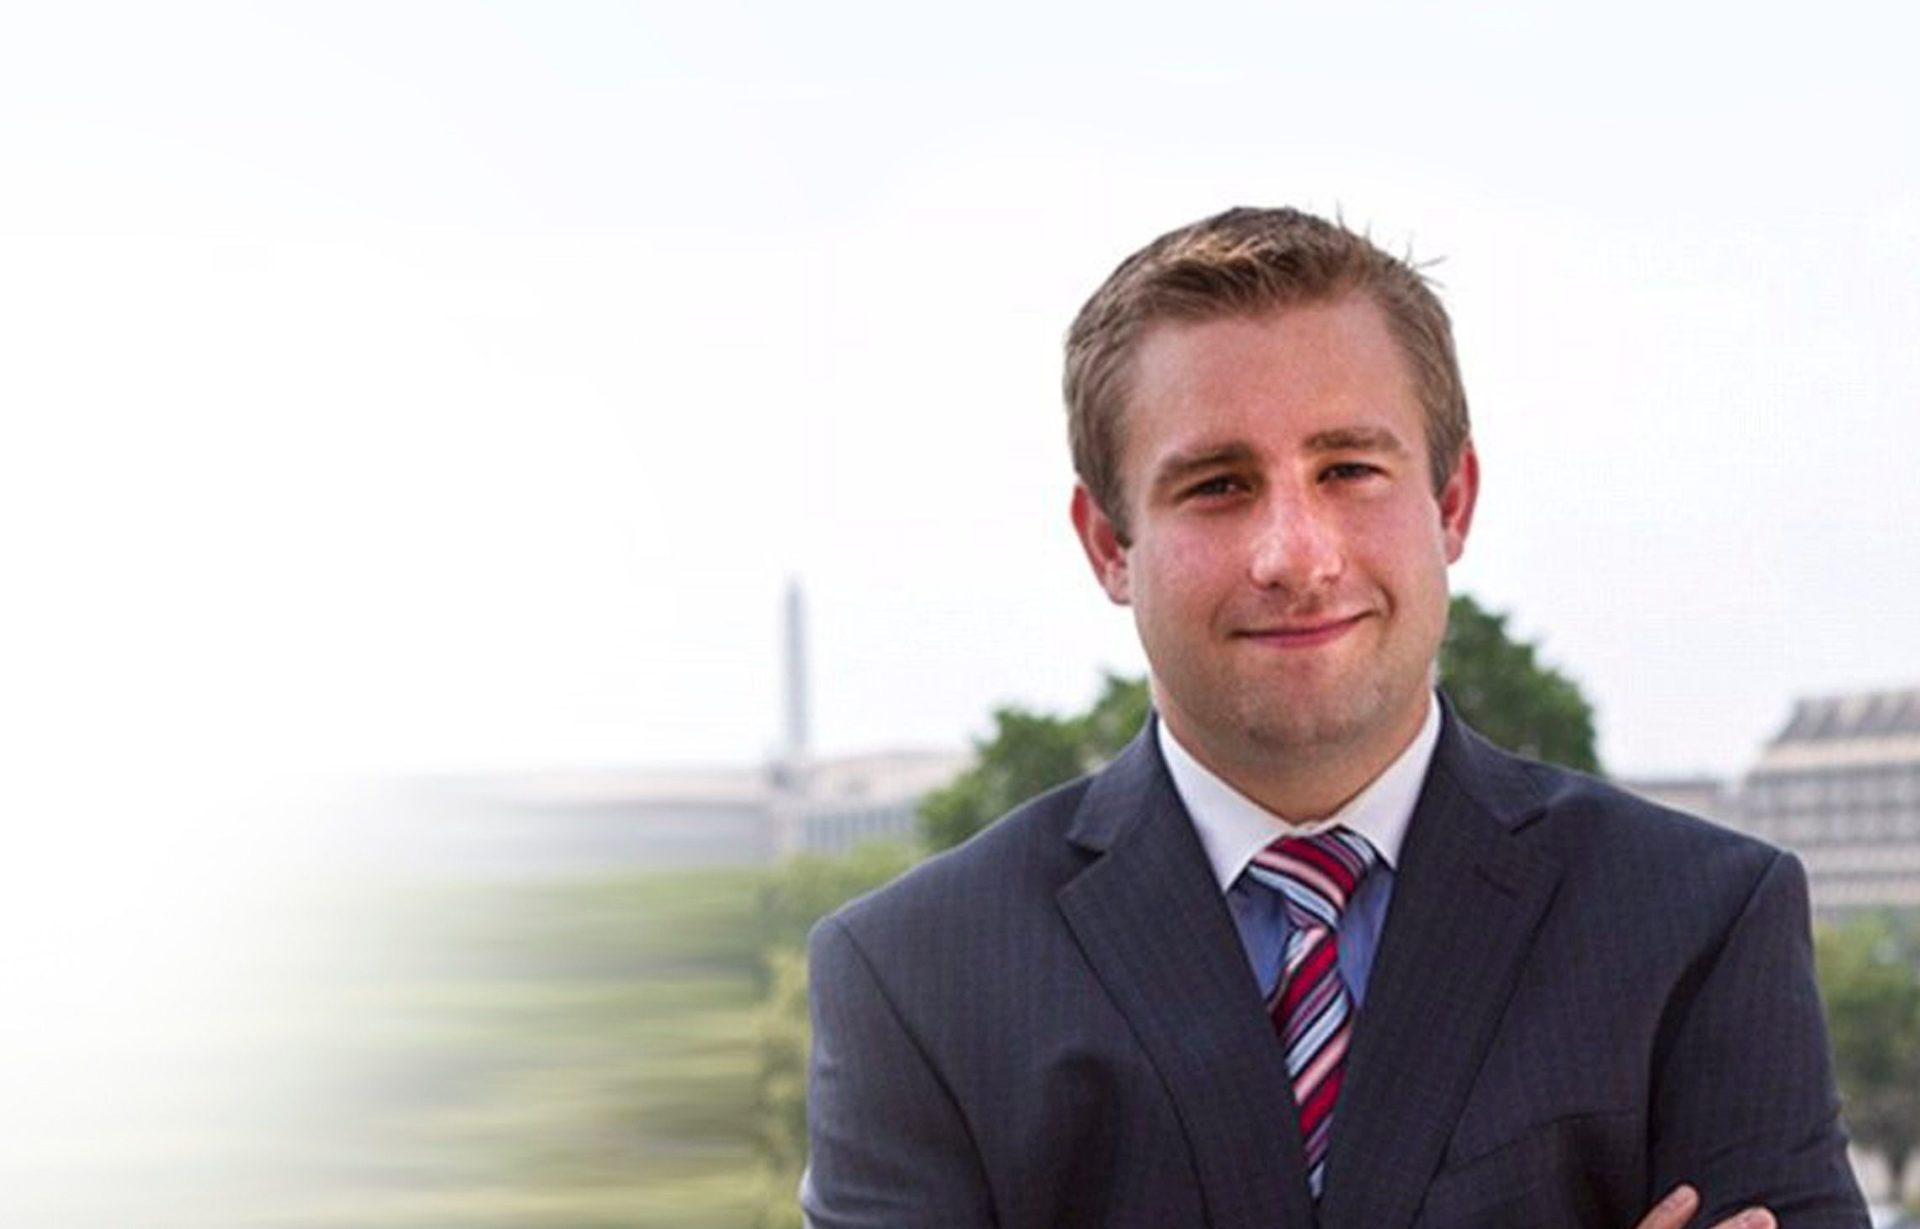 Justice Department Sued for Internal Records Correspondences on Seth Rich Murder